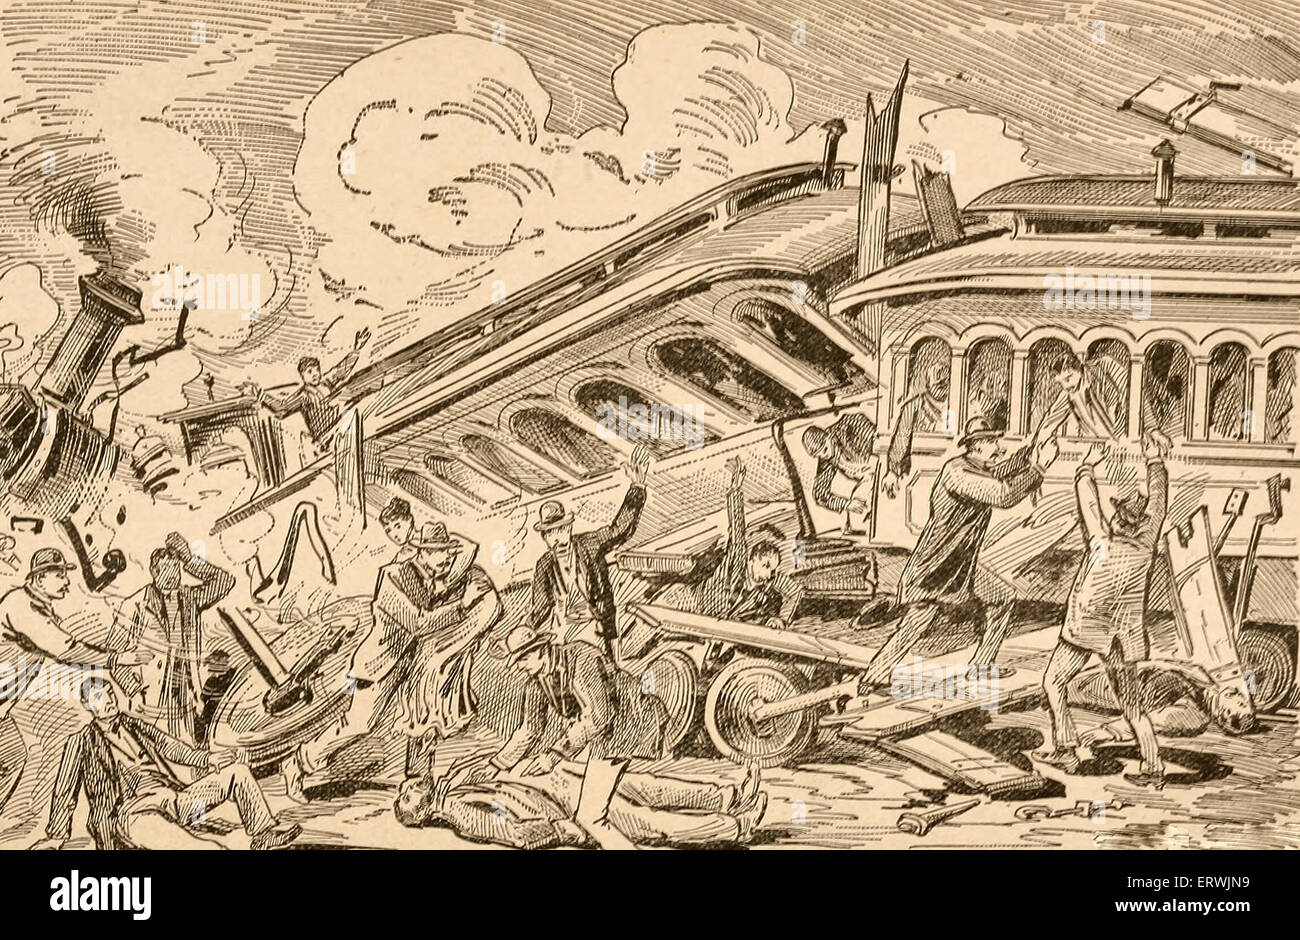 Wreck of the Trains - Johnstown Flood, 1889 - Stock Image